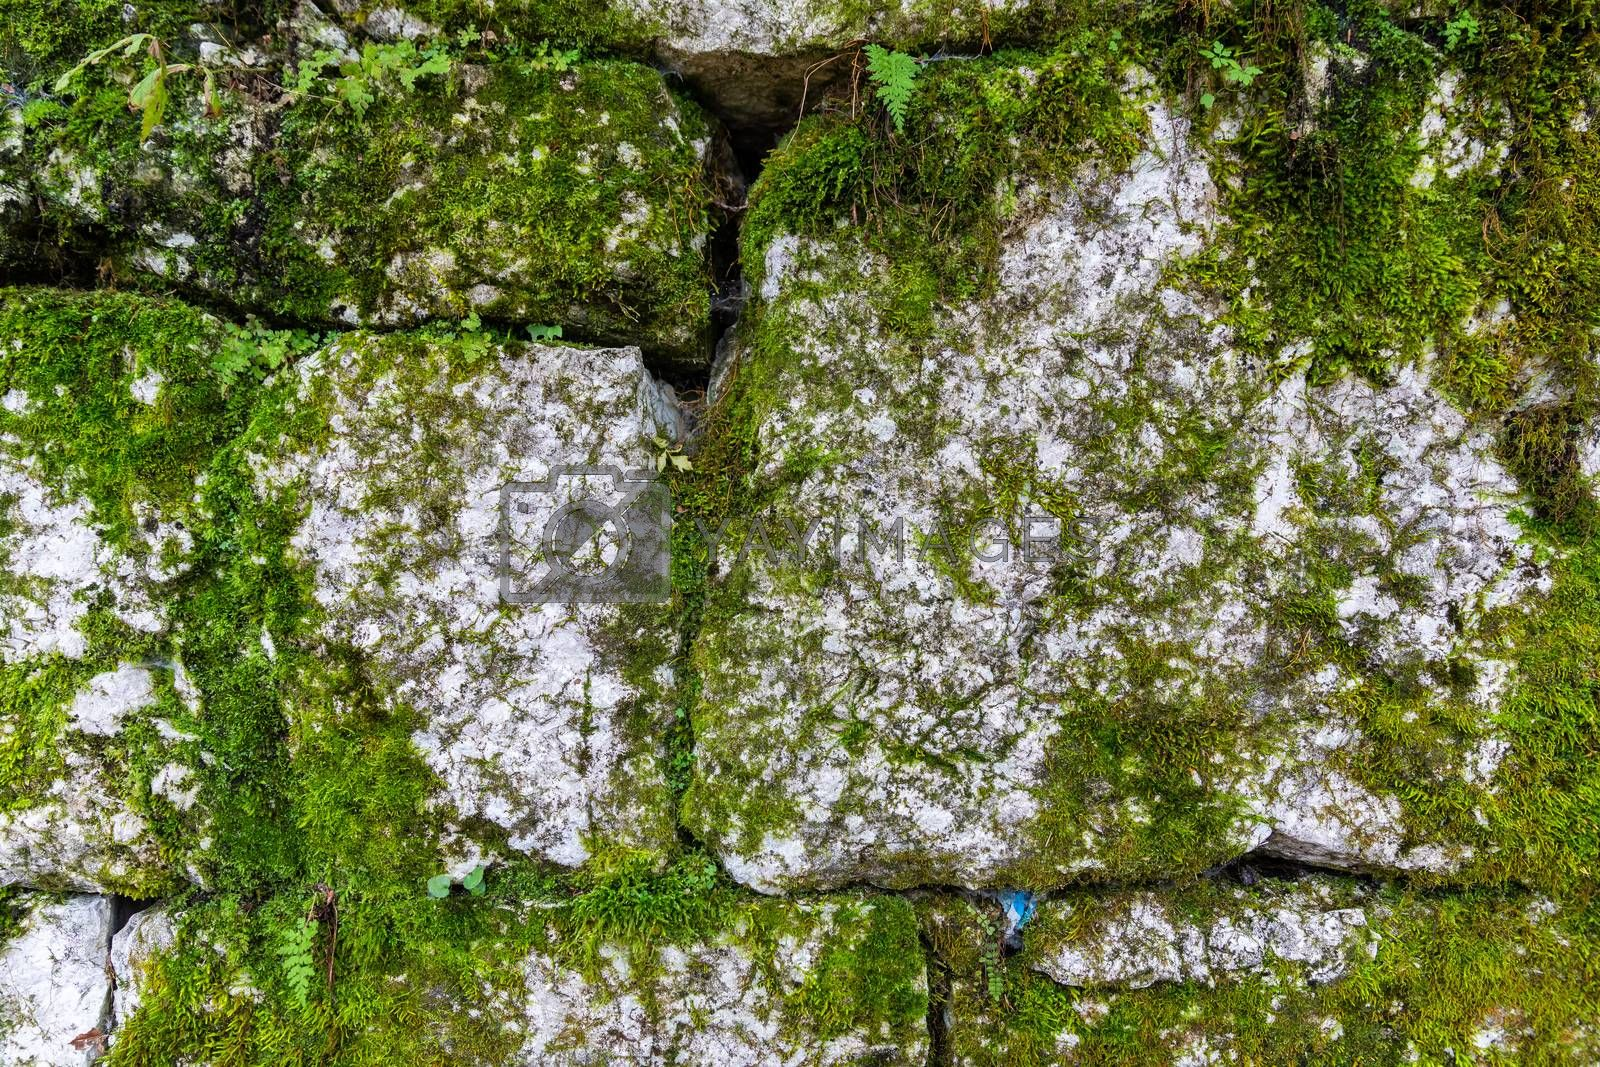 Background wall of arranged rocks in layers covered by green moss.